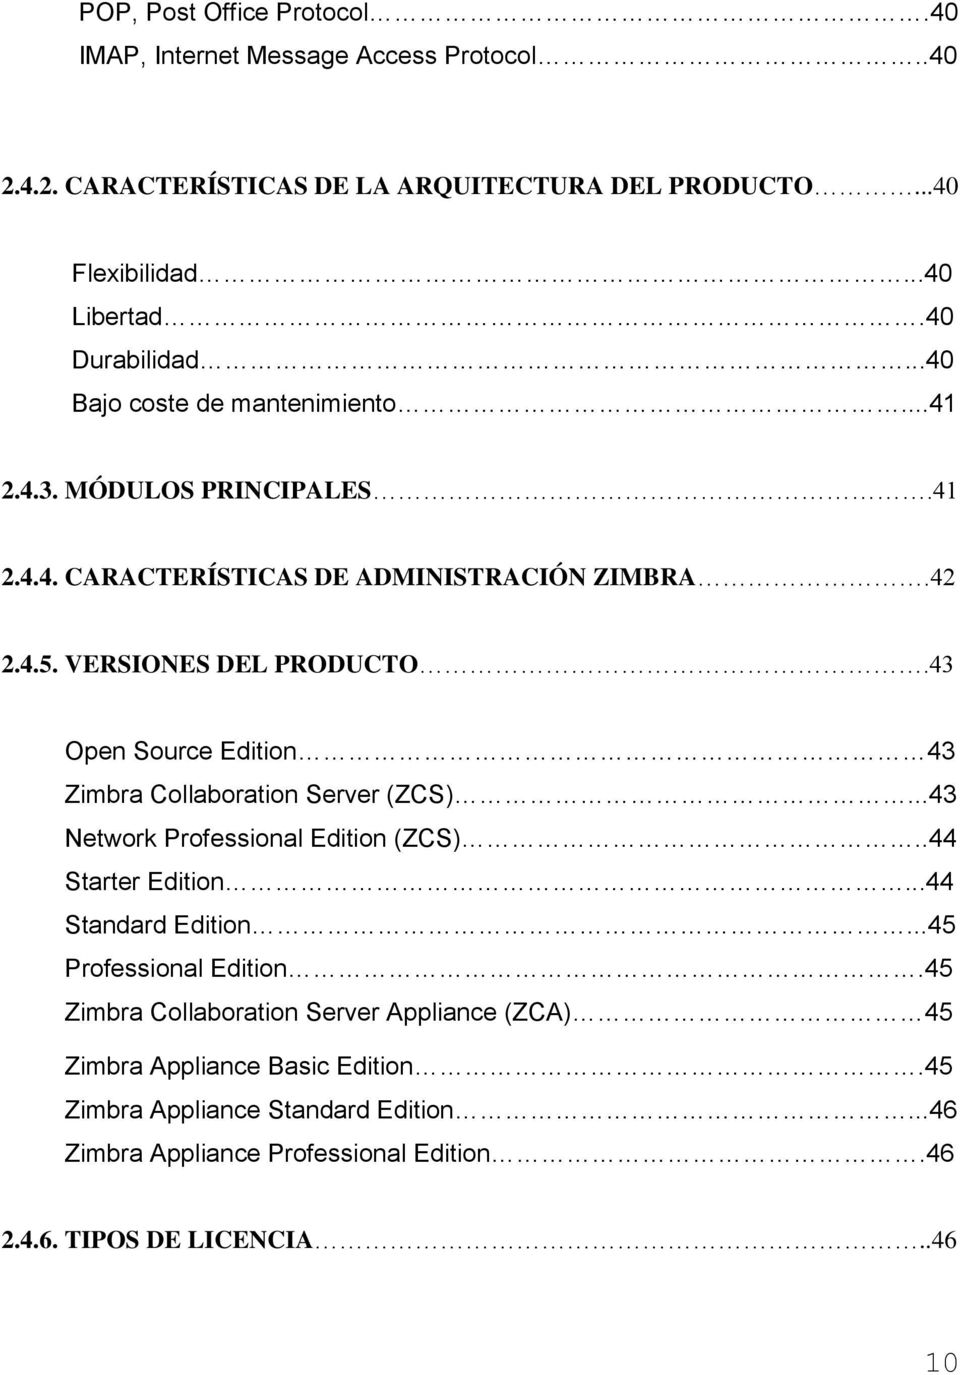 43 Open Source Edition 43 Zimbra Collaboration Server (ZCS)...43 Network Professional Edition (ZCS)..44 Starter Edition...44 Standard Edition...45 Professional Edition.